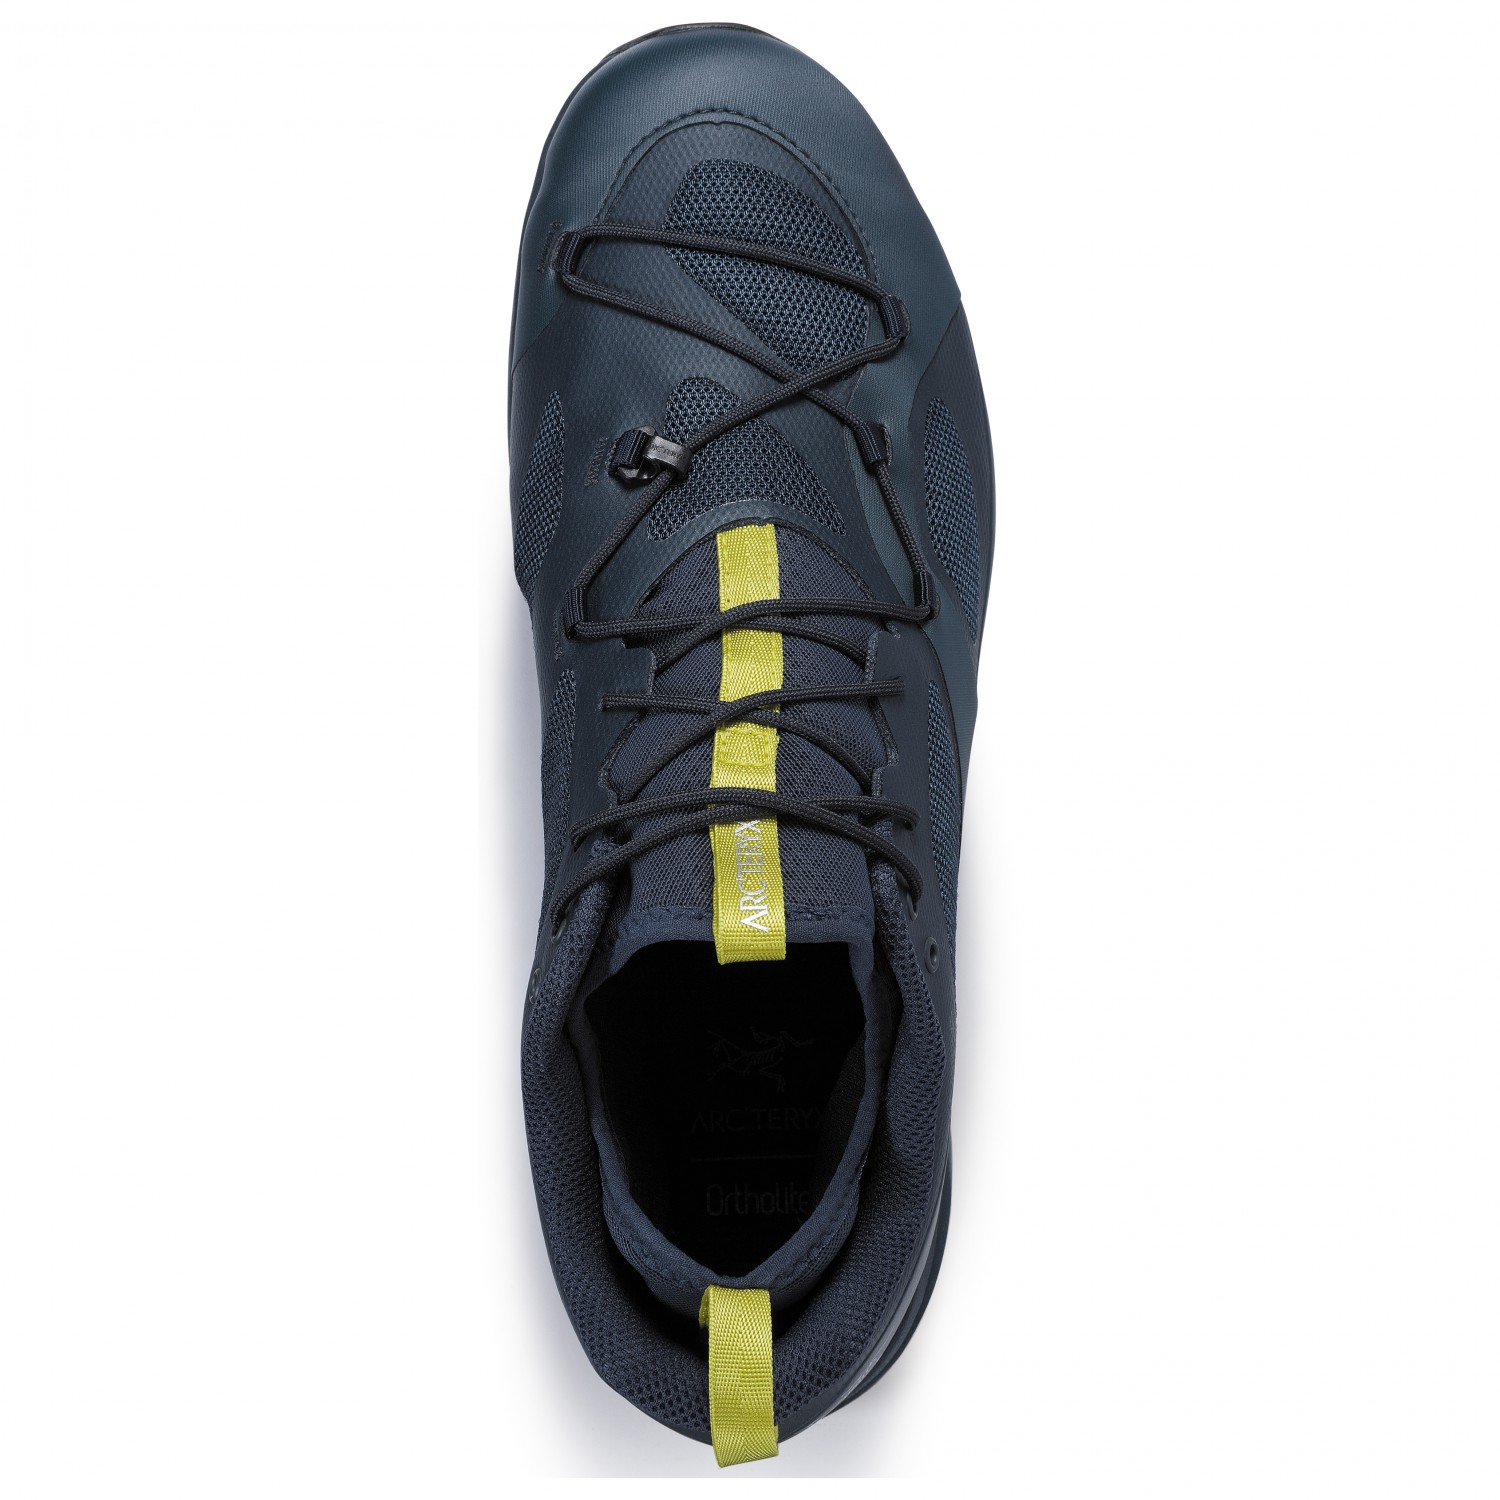 a642b27f49 Arc'teryx Norvan VT GTX Shoe - Trail Running Shoes Men's | Free UK ...